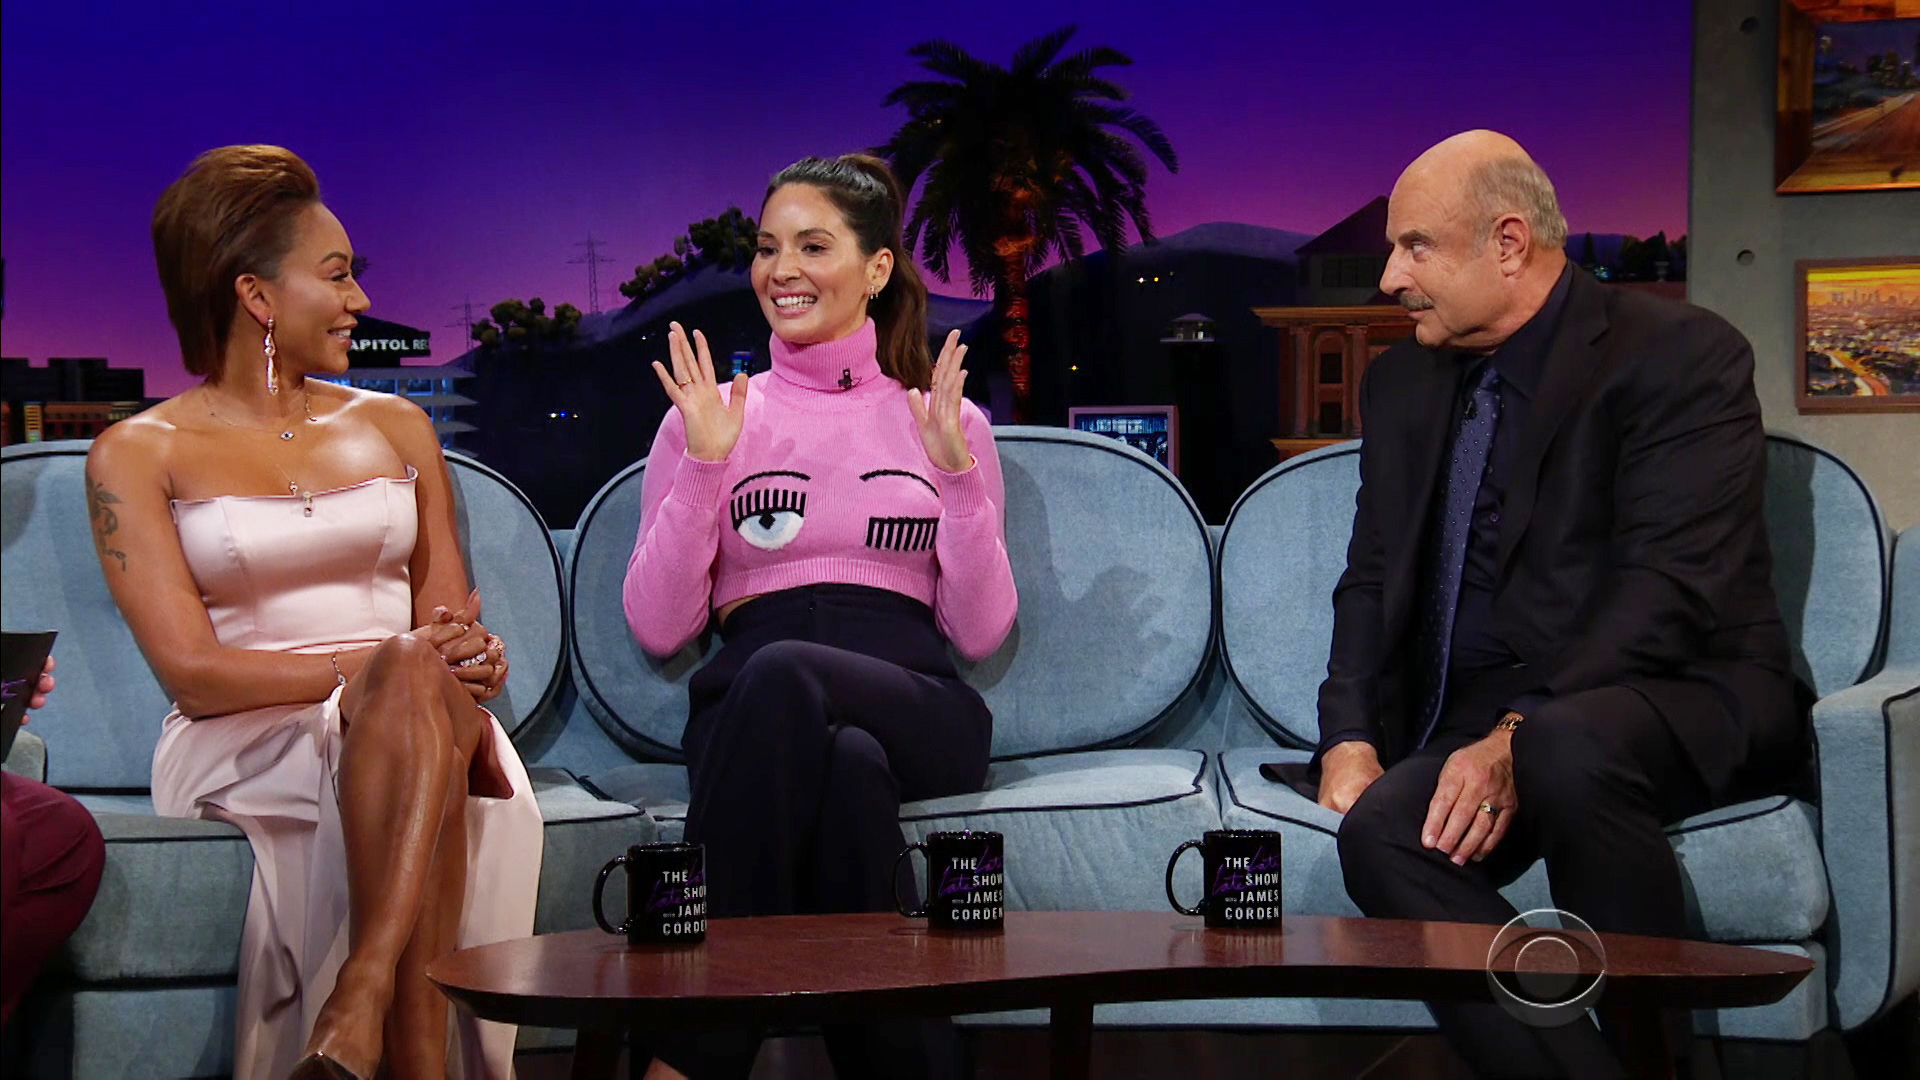 Watch The Late Late Show with James Corden Season 4 Episode 8: 9/13/18 (Mel  B, Dr  Phil, Olivia Munn, Good Charlotte) - Full show on CBS All Access